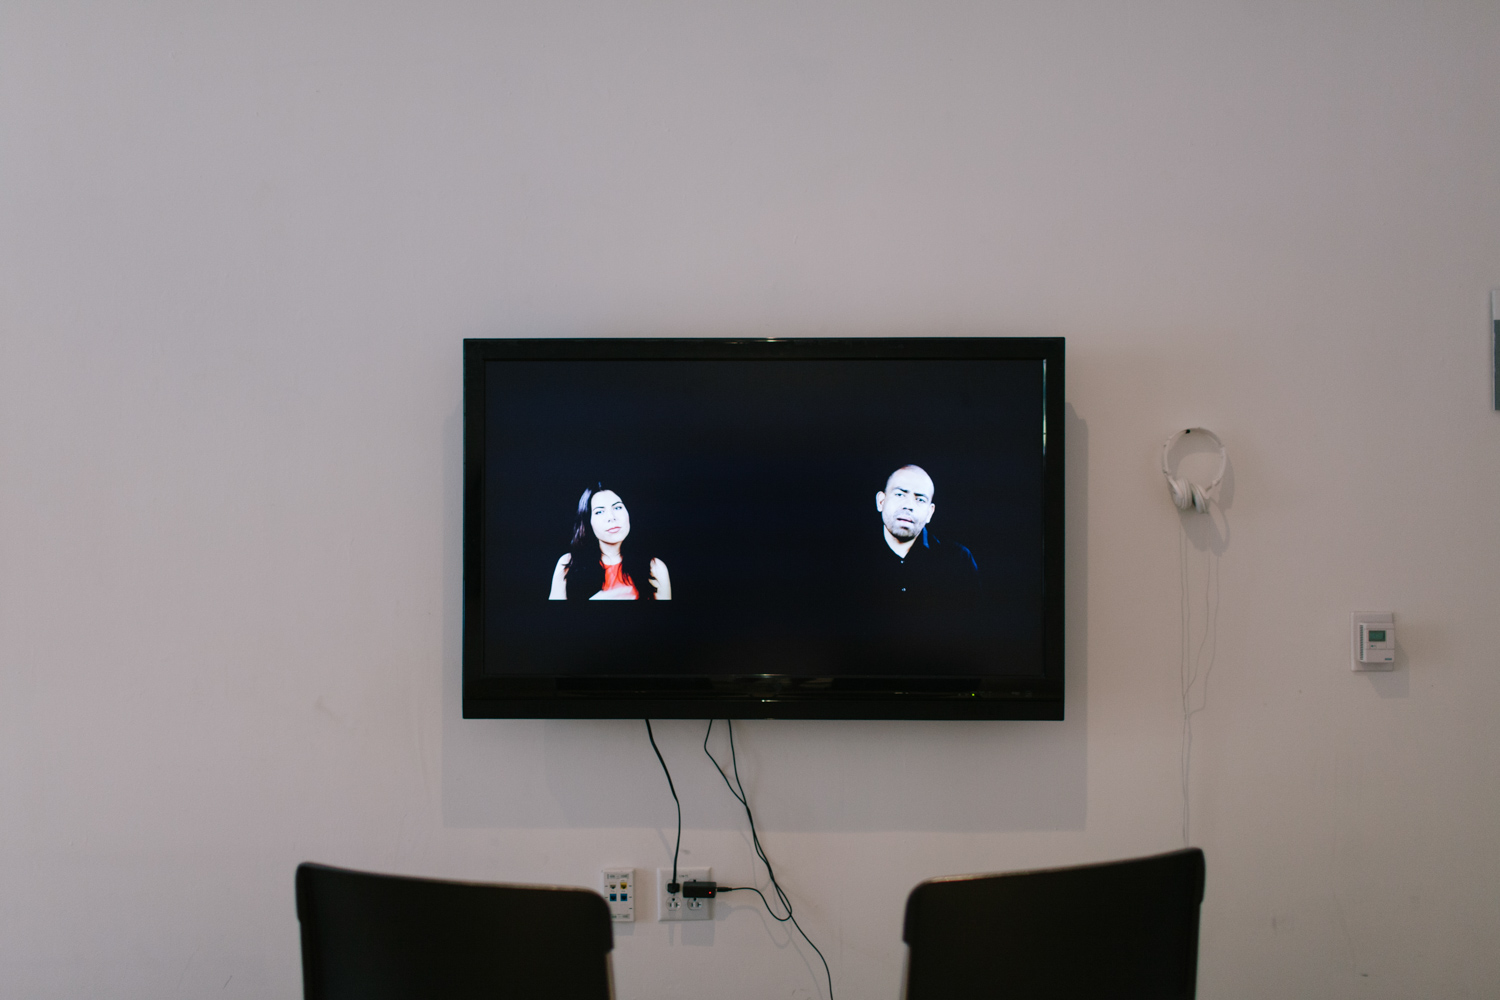 Two chairs in front of a television monitor.